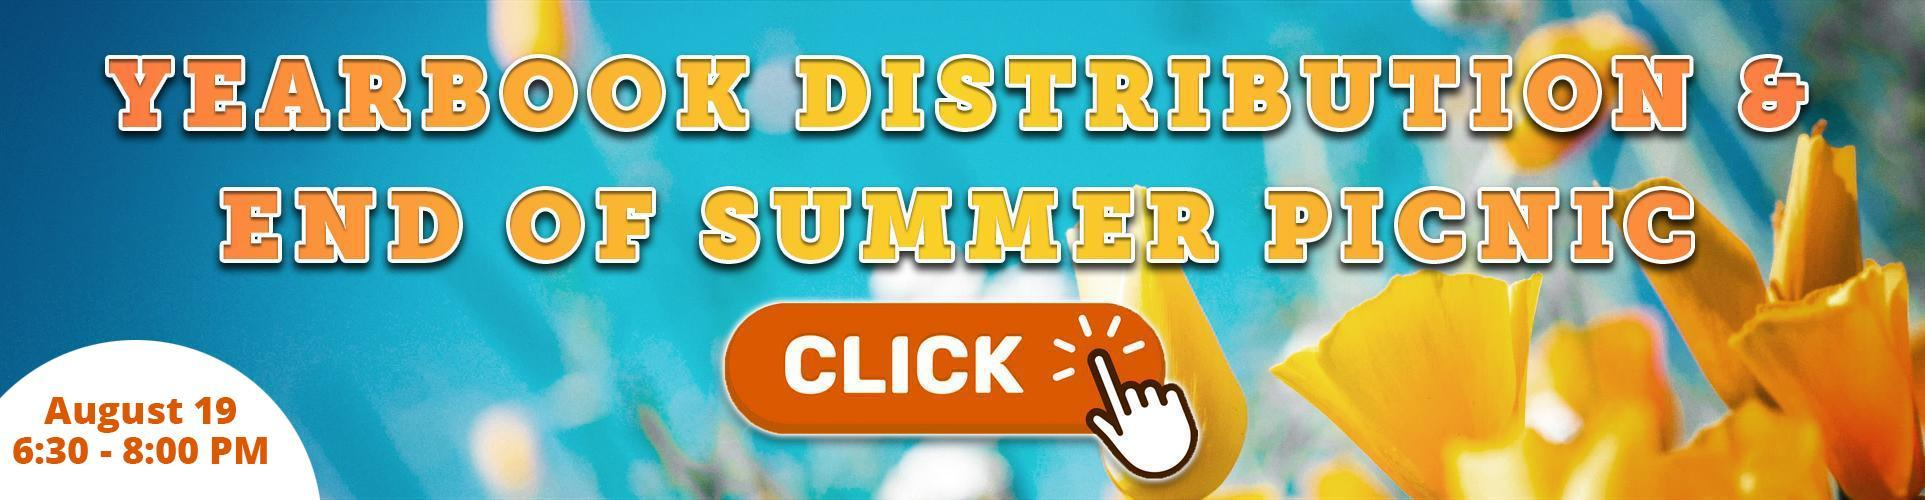 Yearbook Distribution & End of Summer Picnic